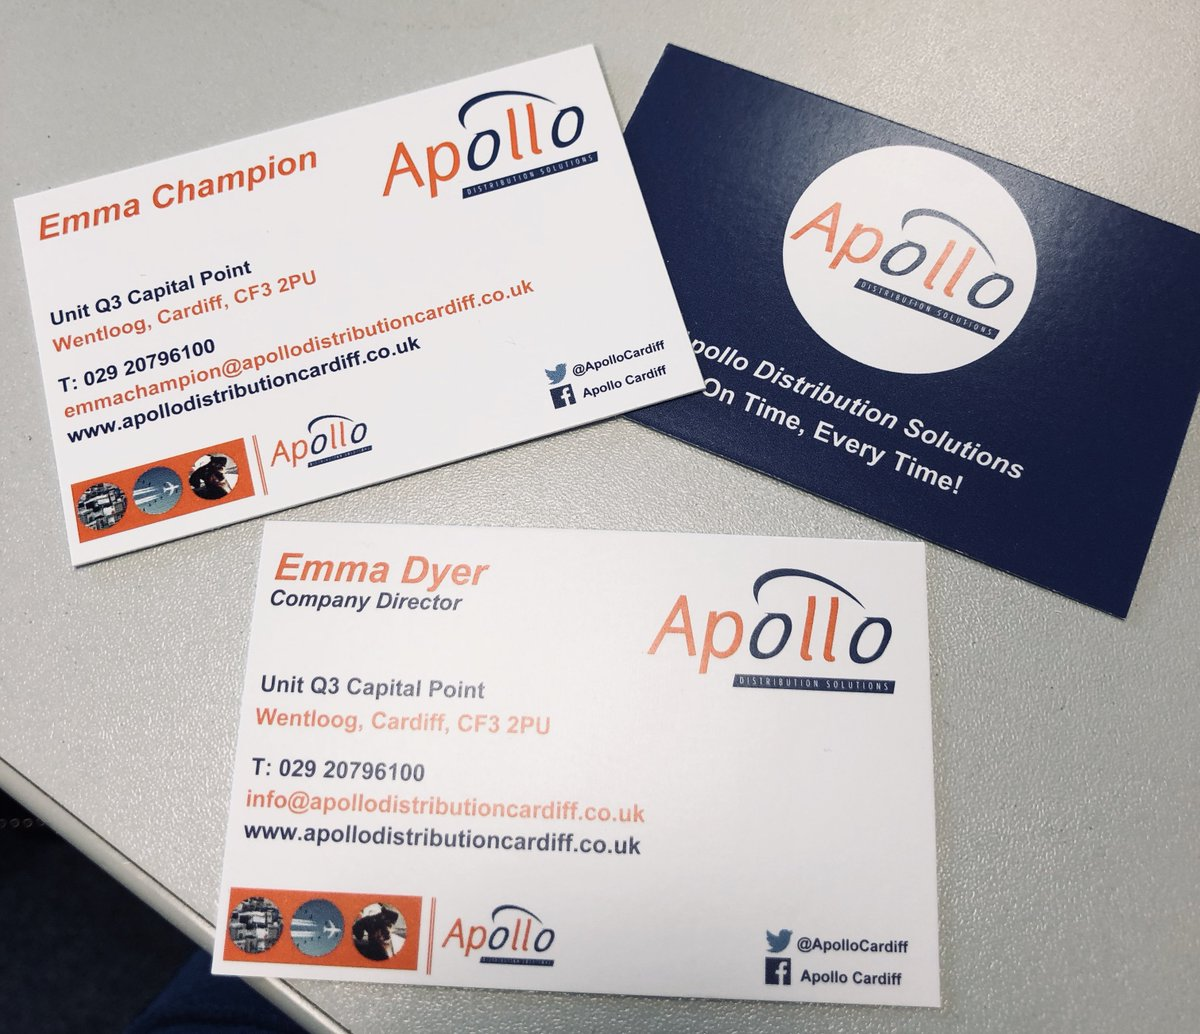 Apollo Distribution (@ApolloCardiff) | Twitter